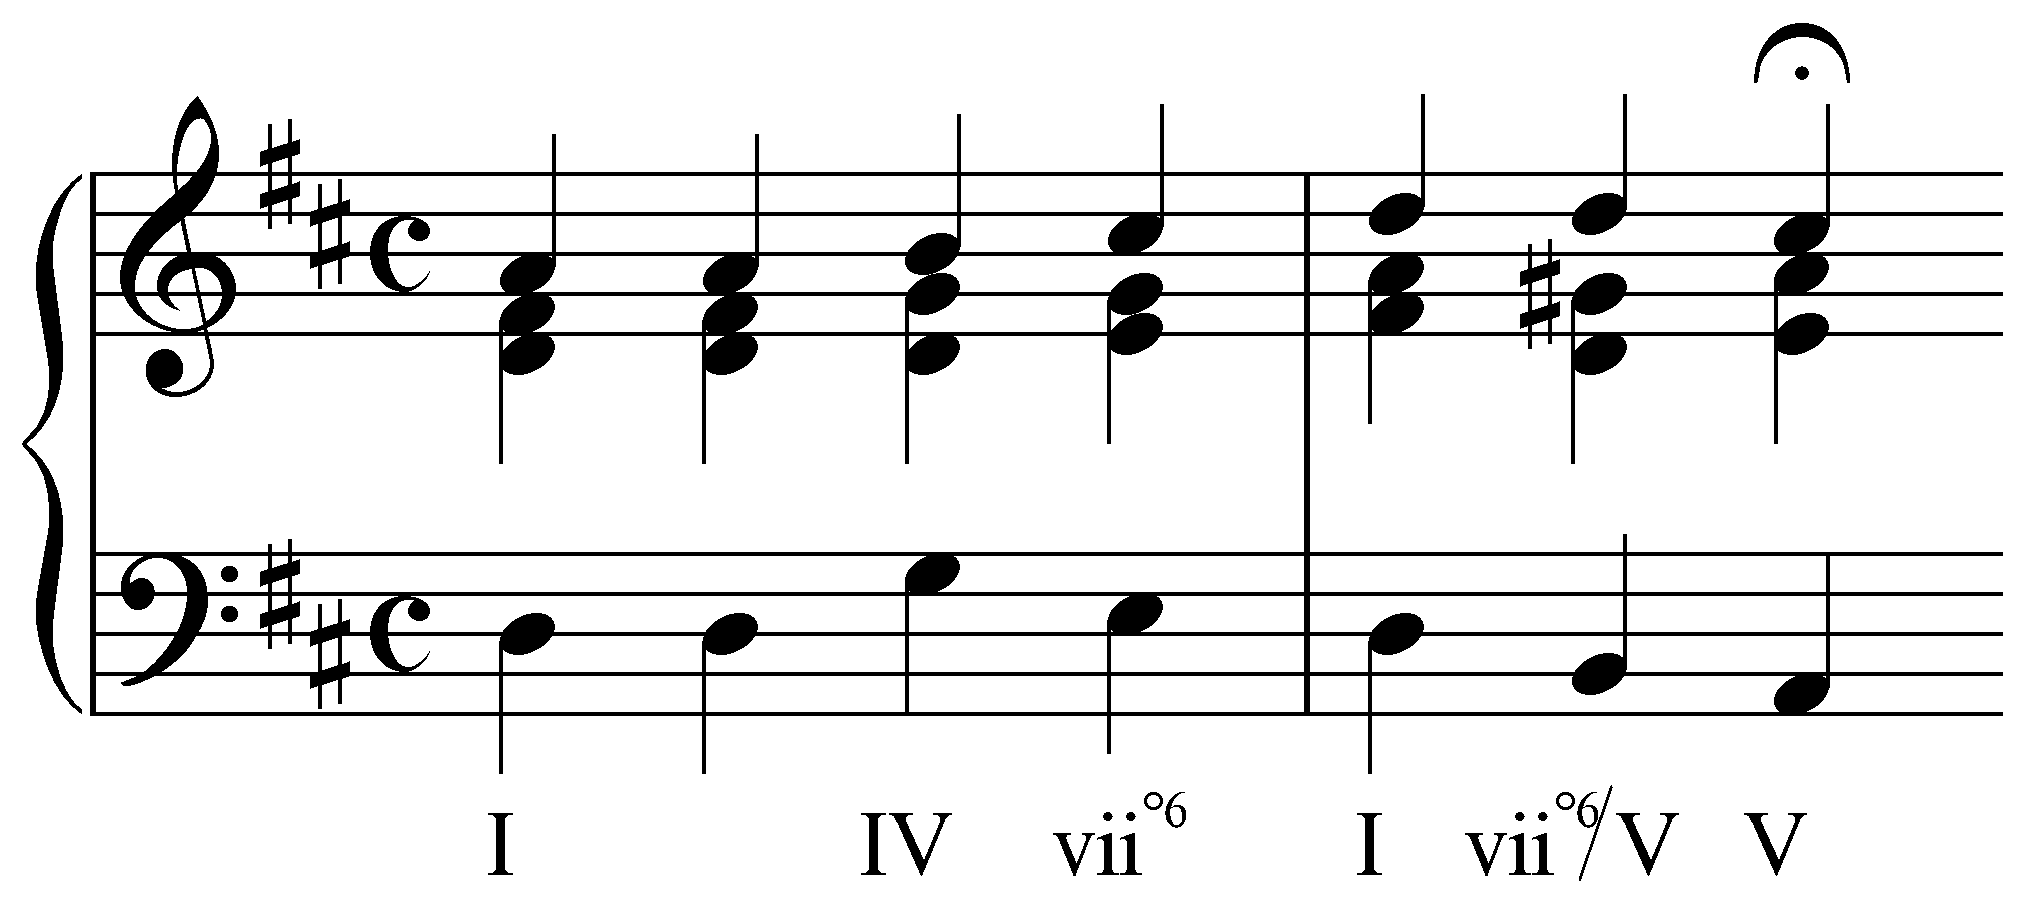 example of a triad in english